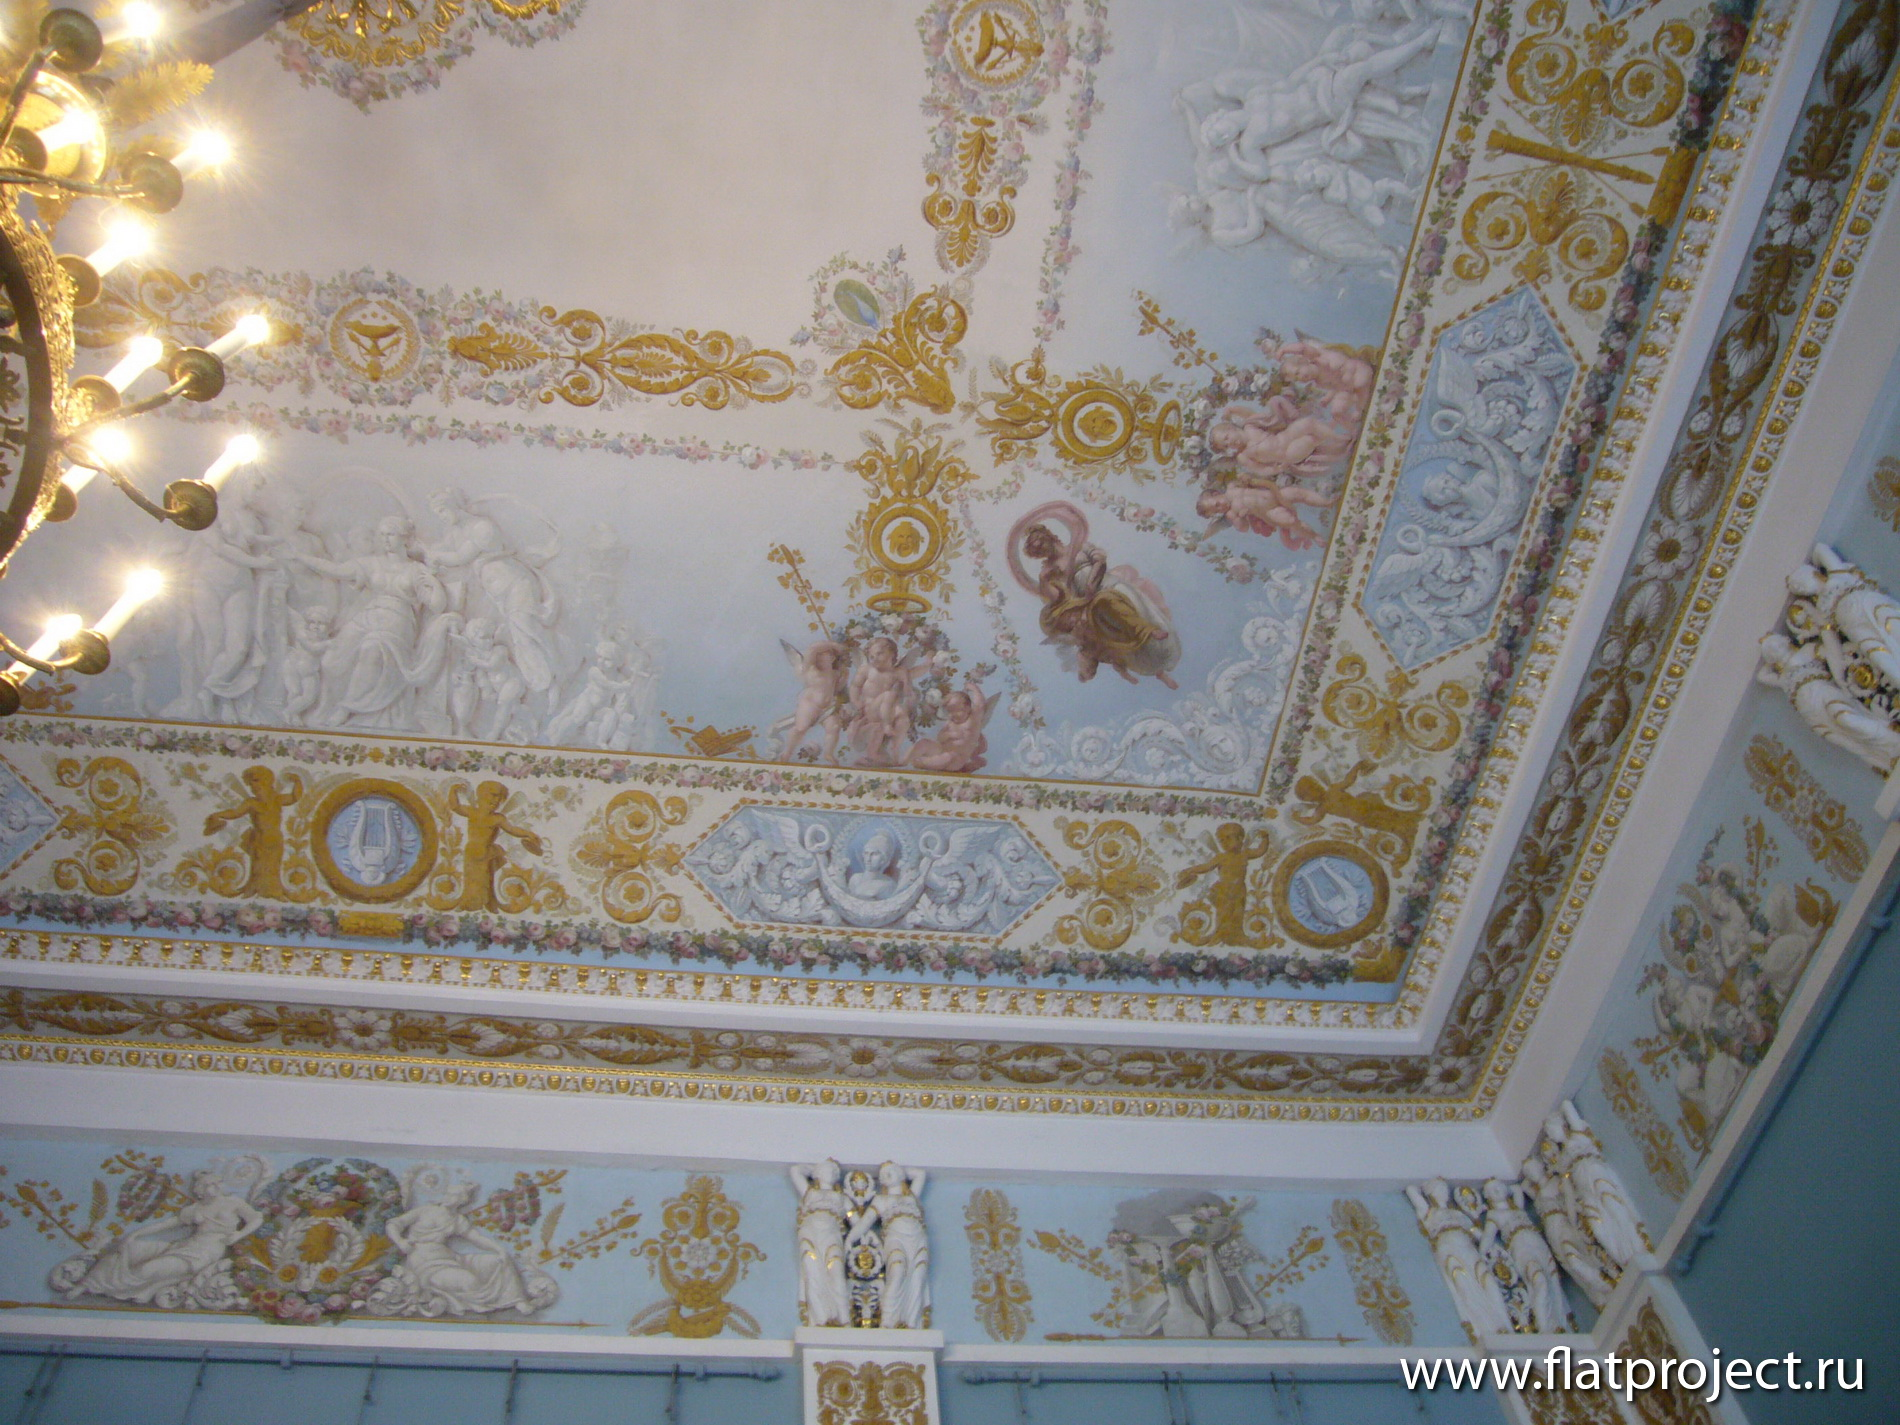 The State Russian museum interiors – photo 75